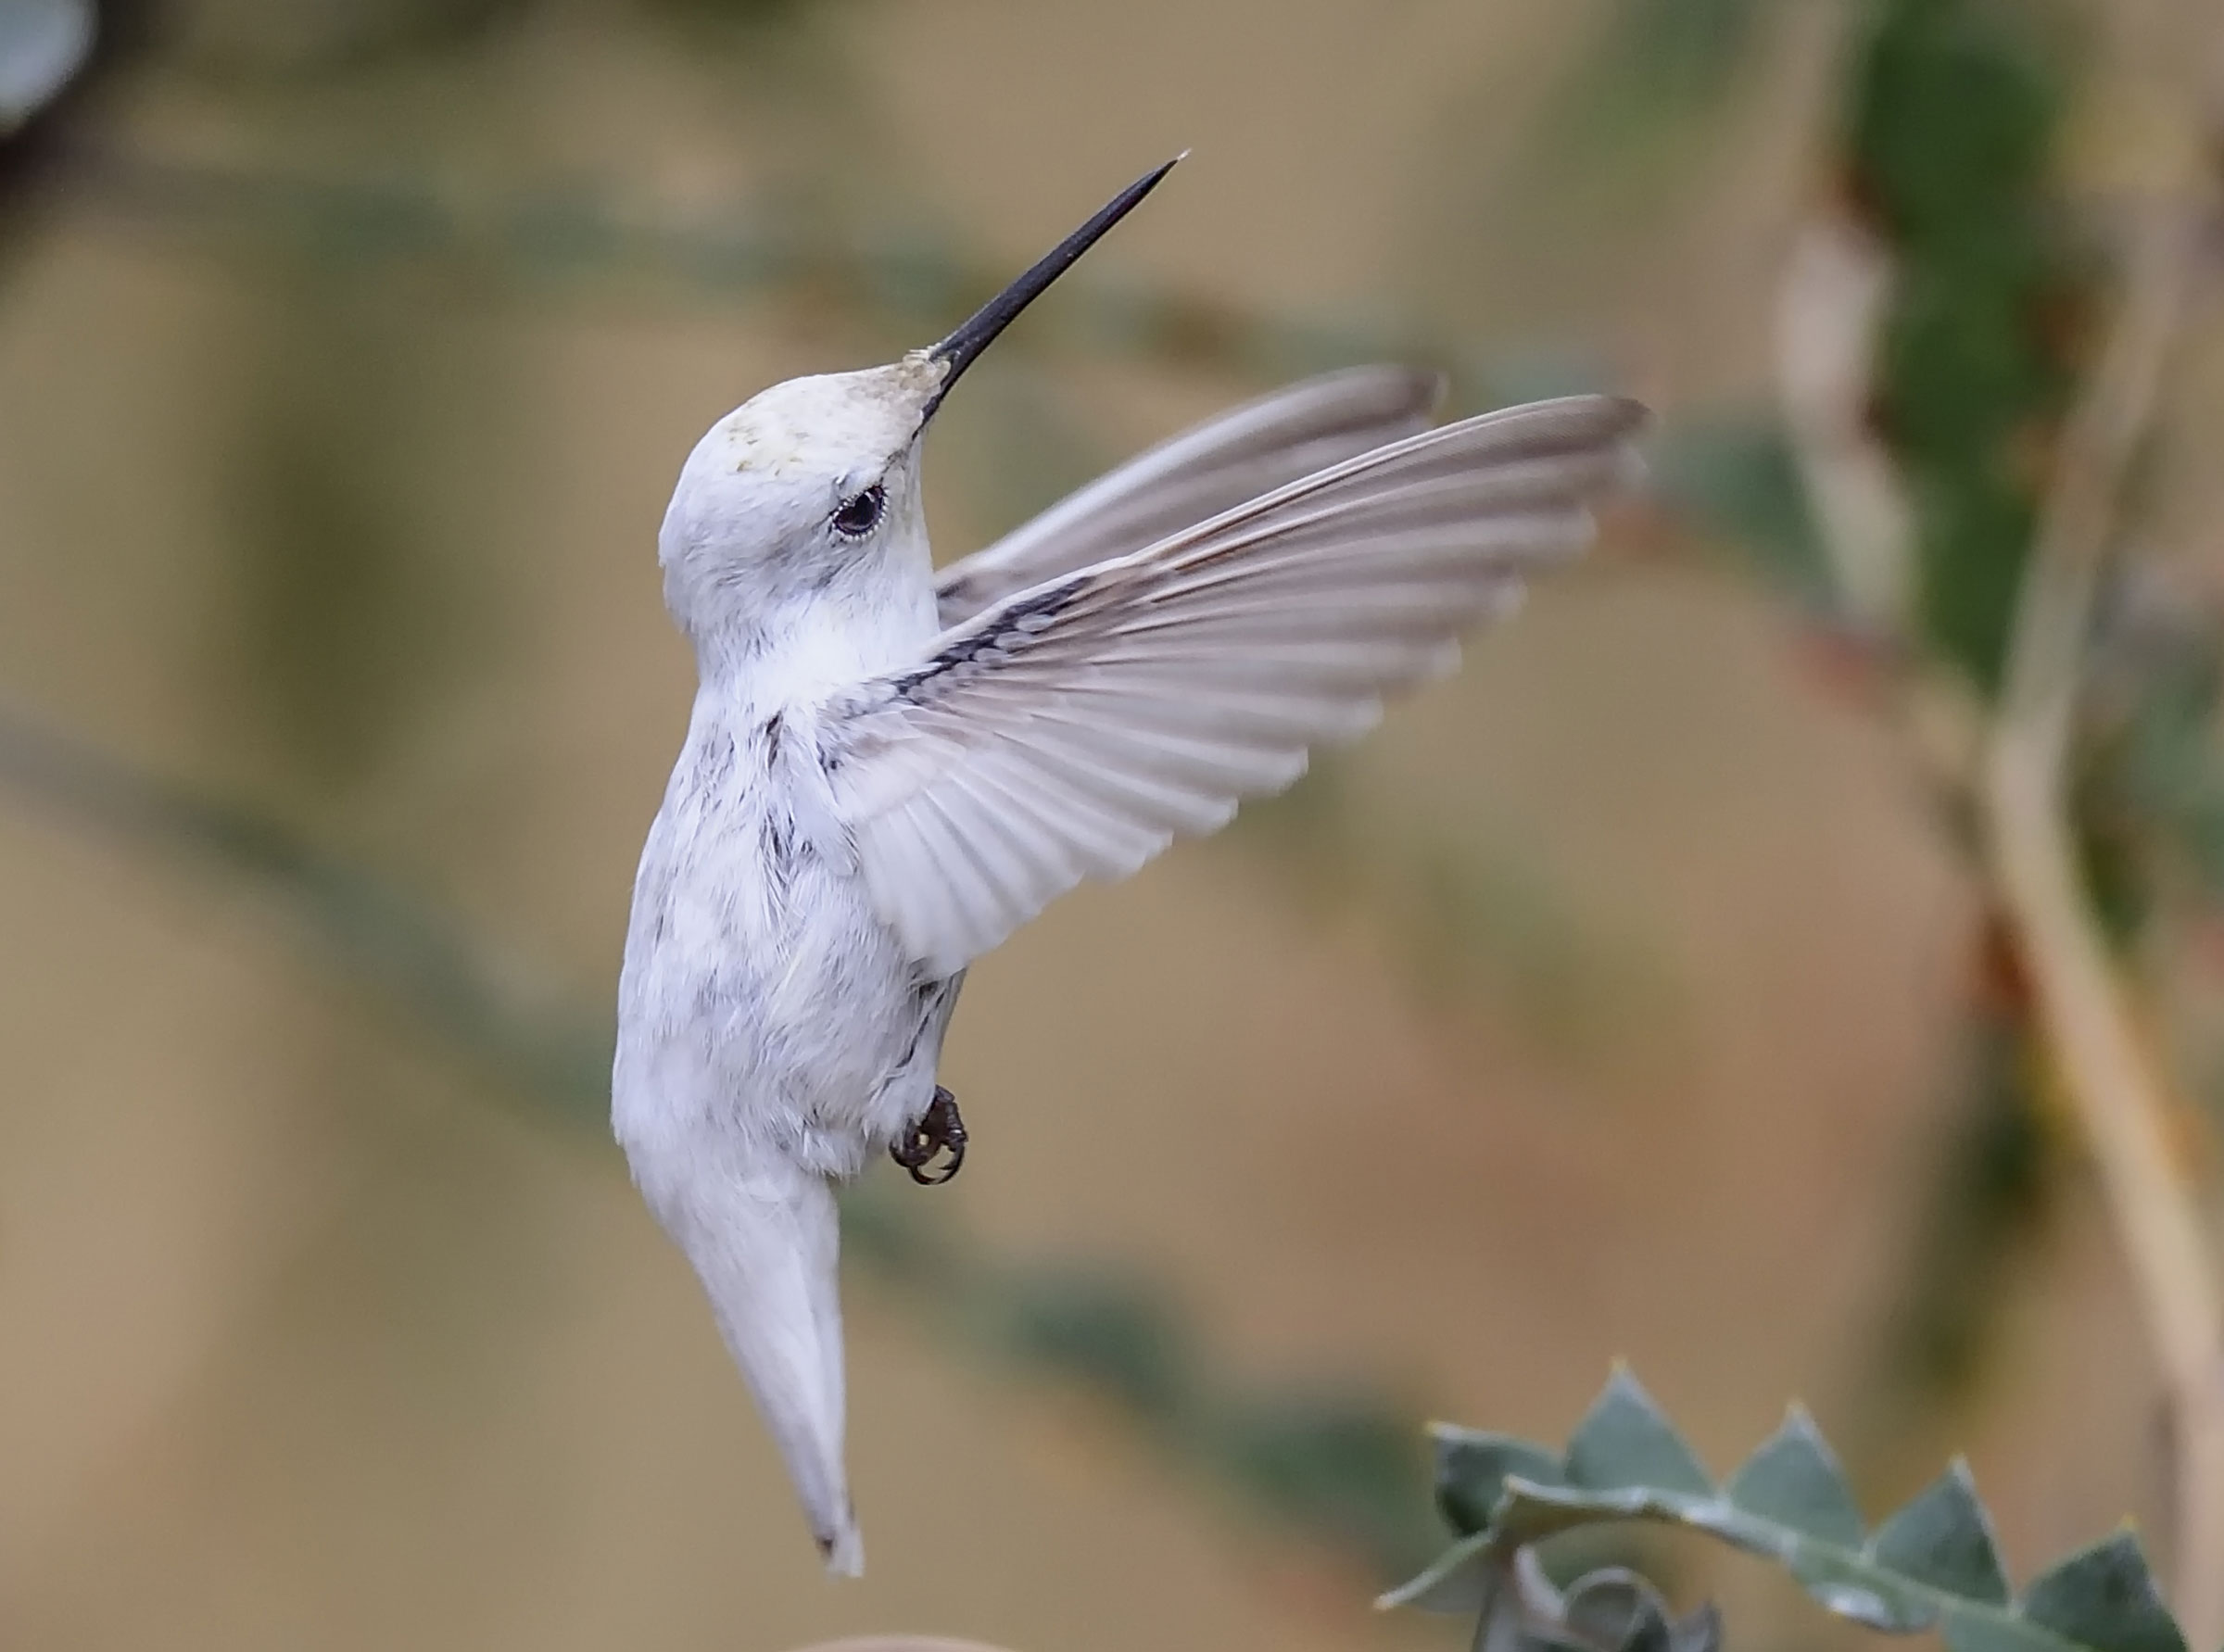 The rare patch of black feathers is evidence that the bird is leucistic, not albino. Brad R. Lewis